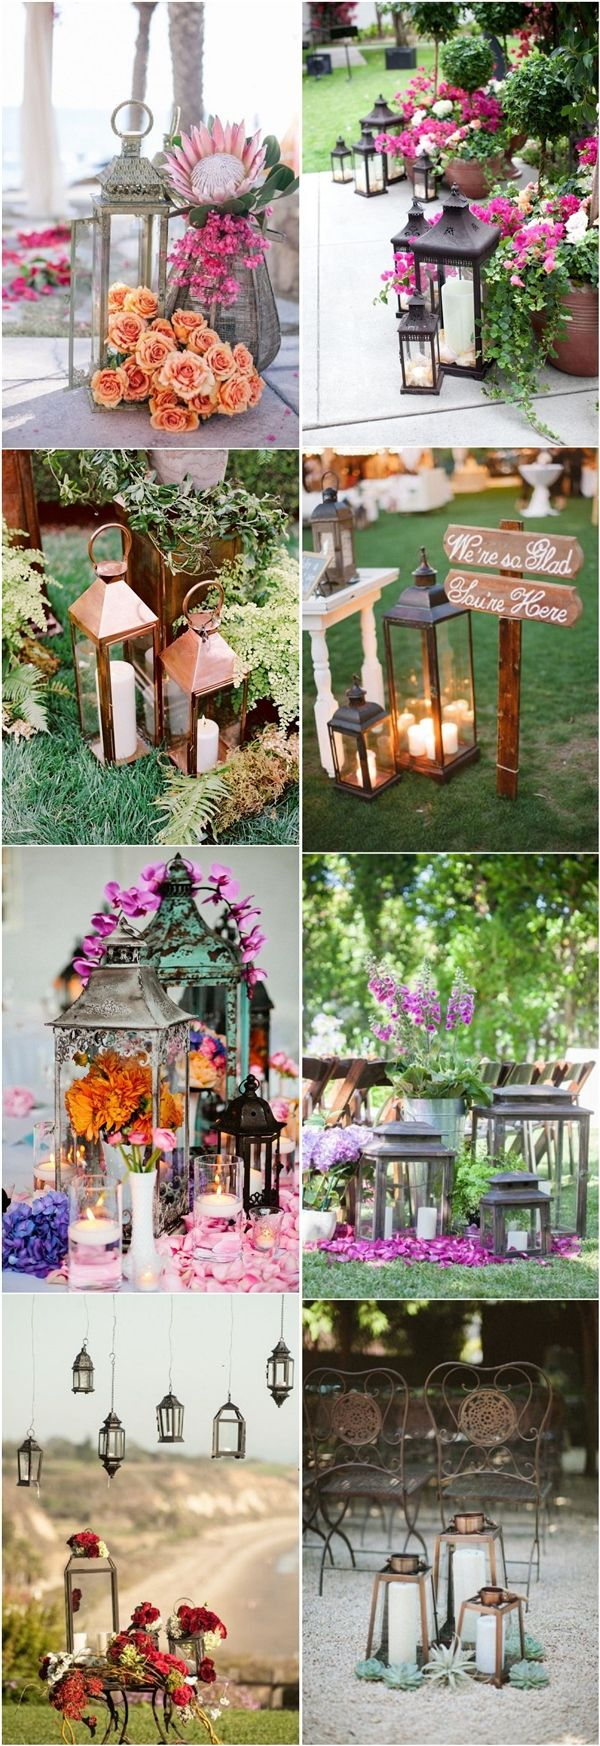 rustic outdoor wedding ideas- country lantern wedding decors / http://www.deerpearlflowers.com/rustic-lantern-wedding-decor-ideas/